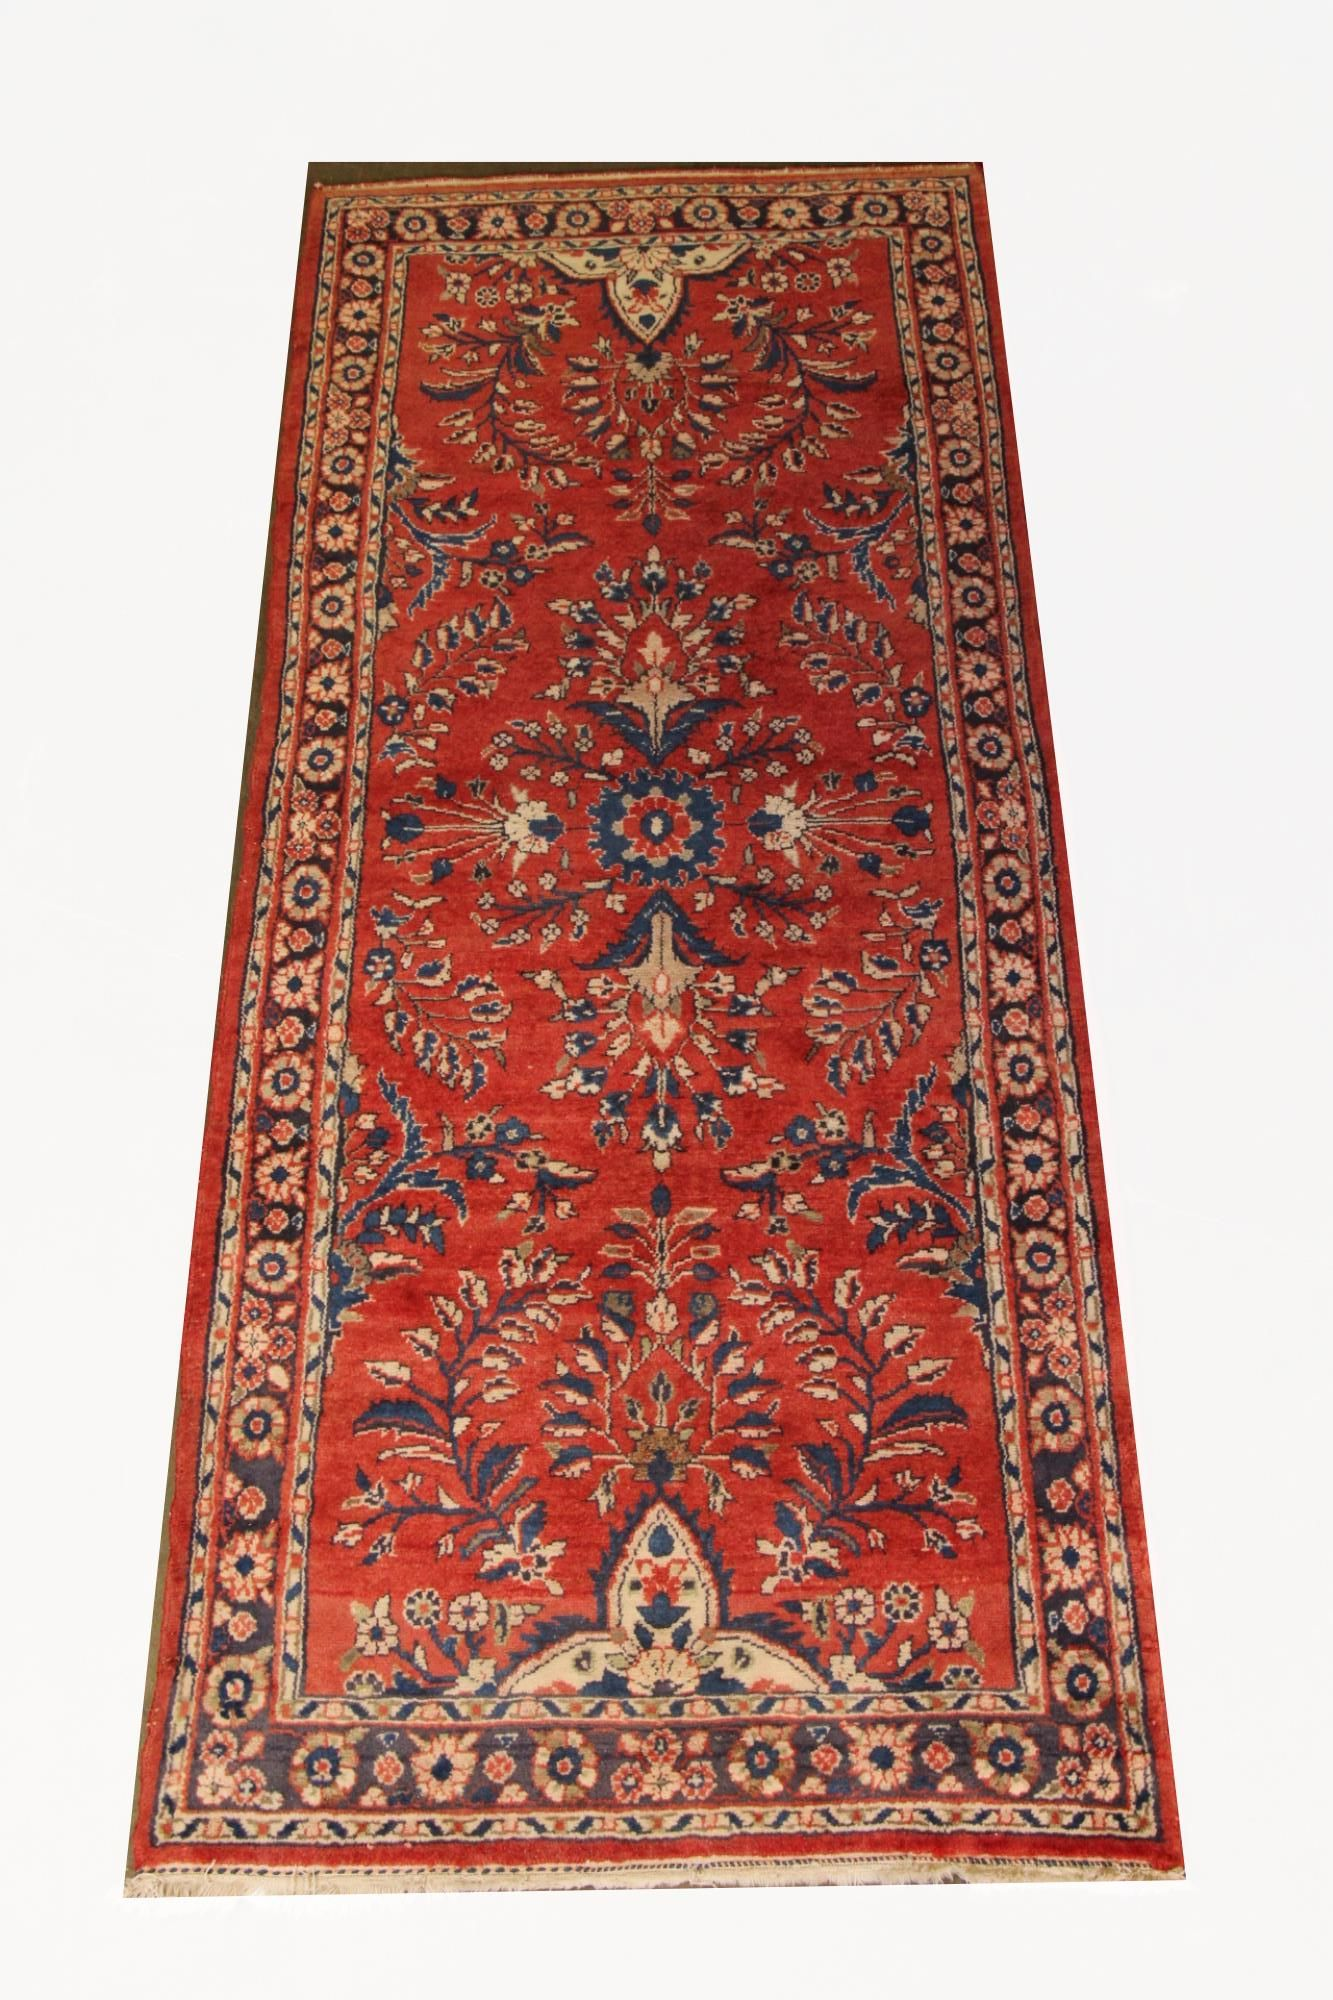 HANDKNOTTED PERSIAN SAROUK RUNNER